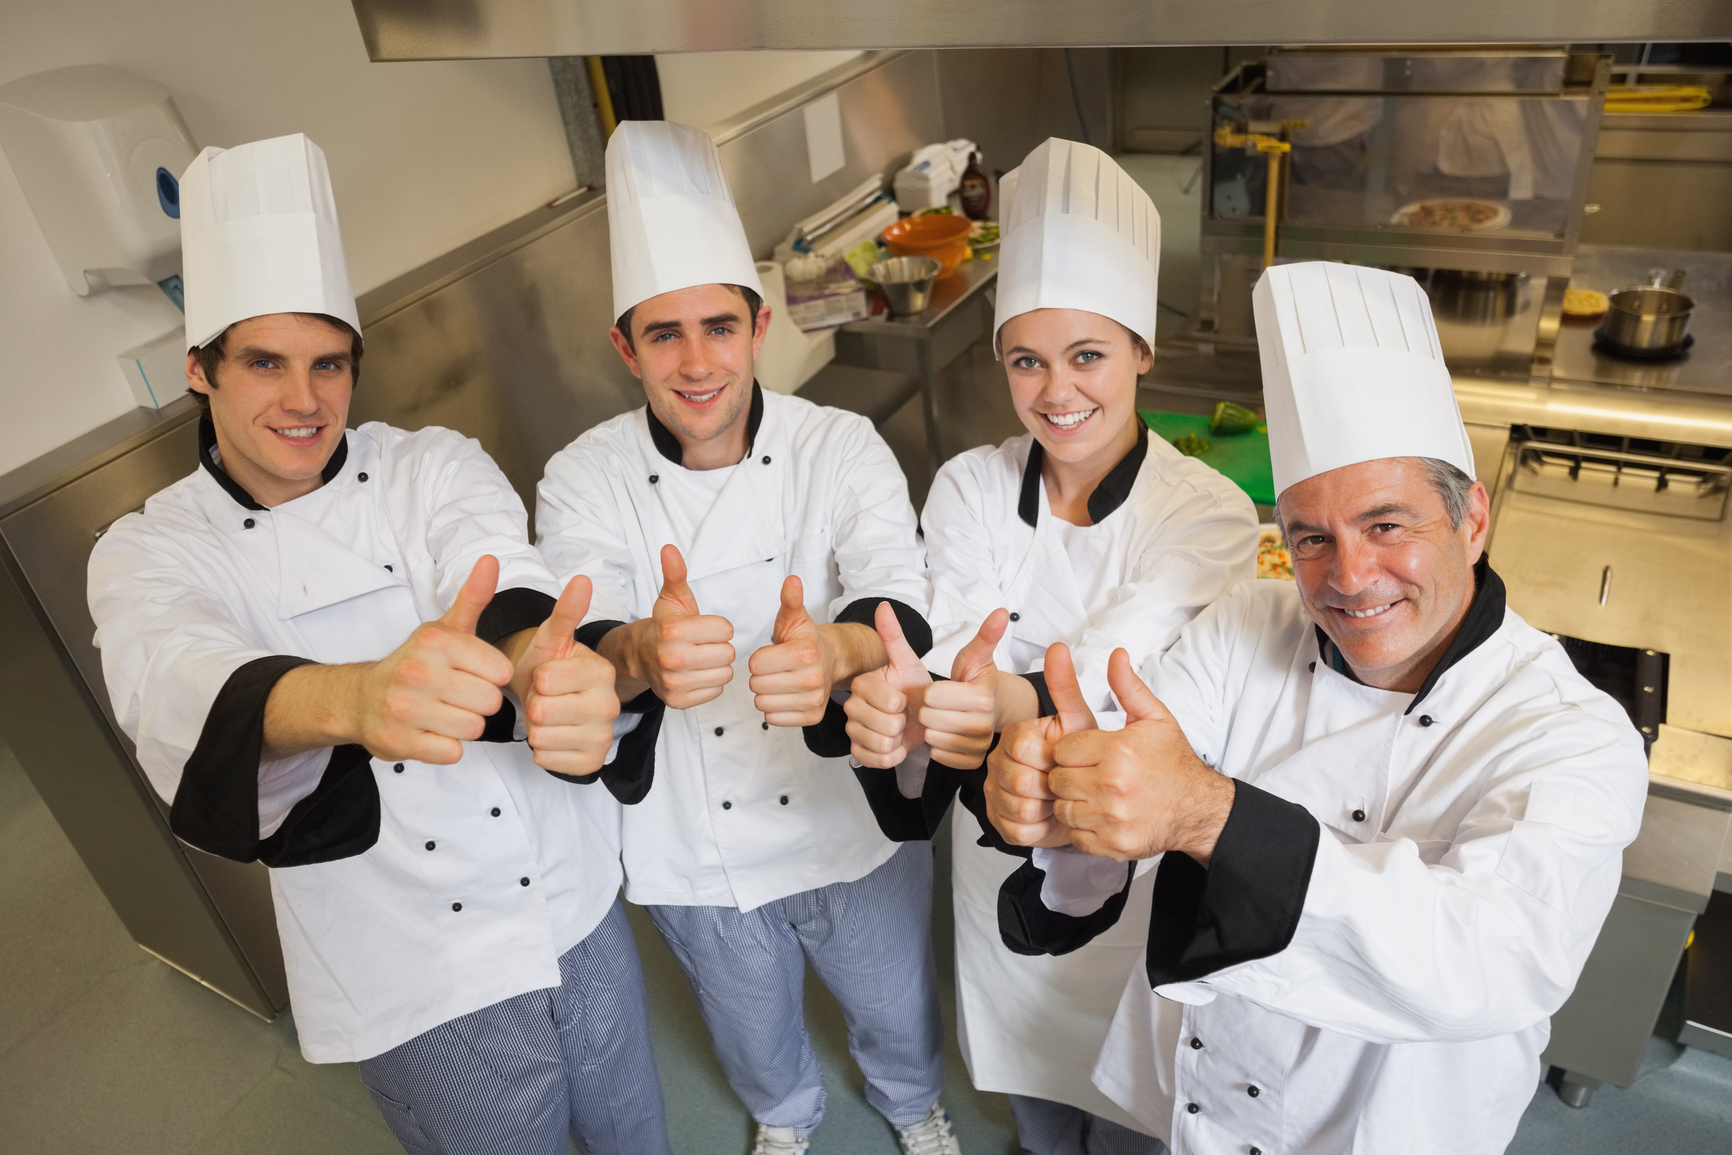 photodune-8450170-team-of-chefs-giving-thumbs-up-in-restaurant-kitchen-m